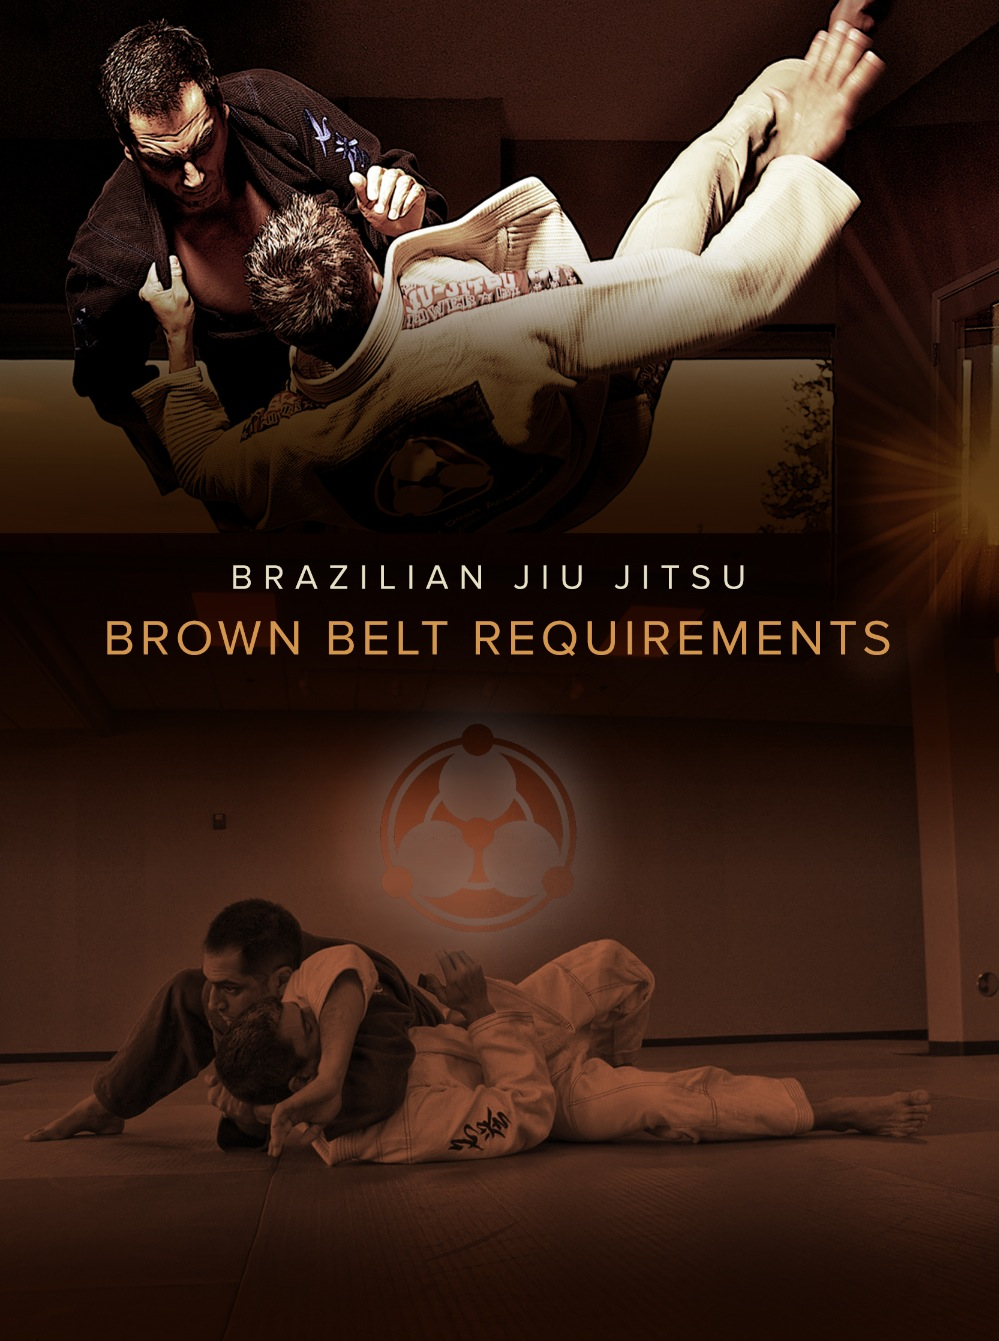 Brazilian Jiu Jitsu Brown Belt Requirements